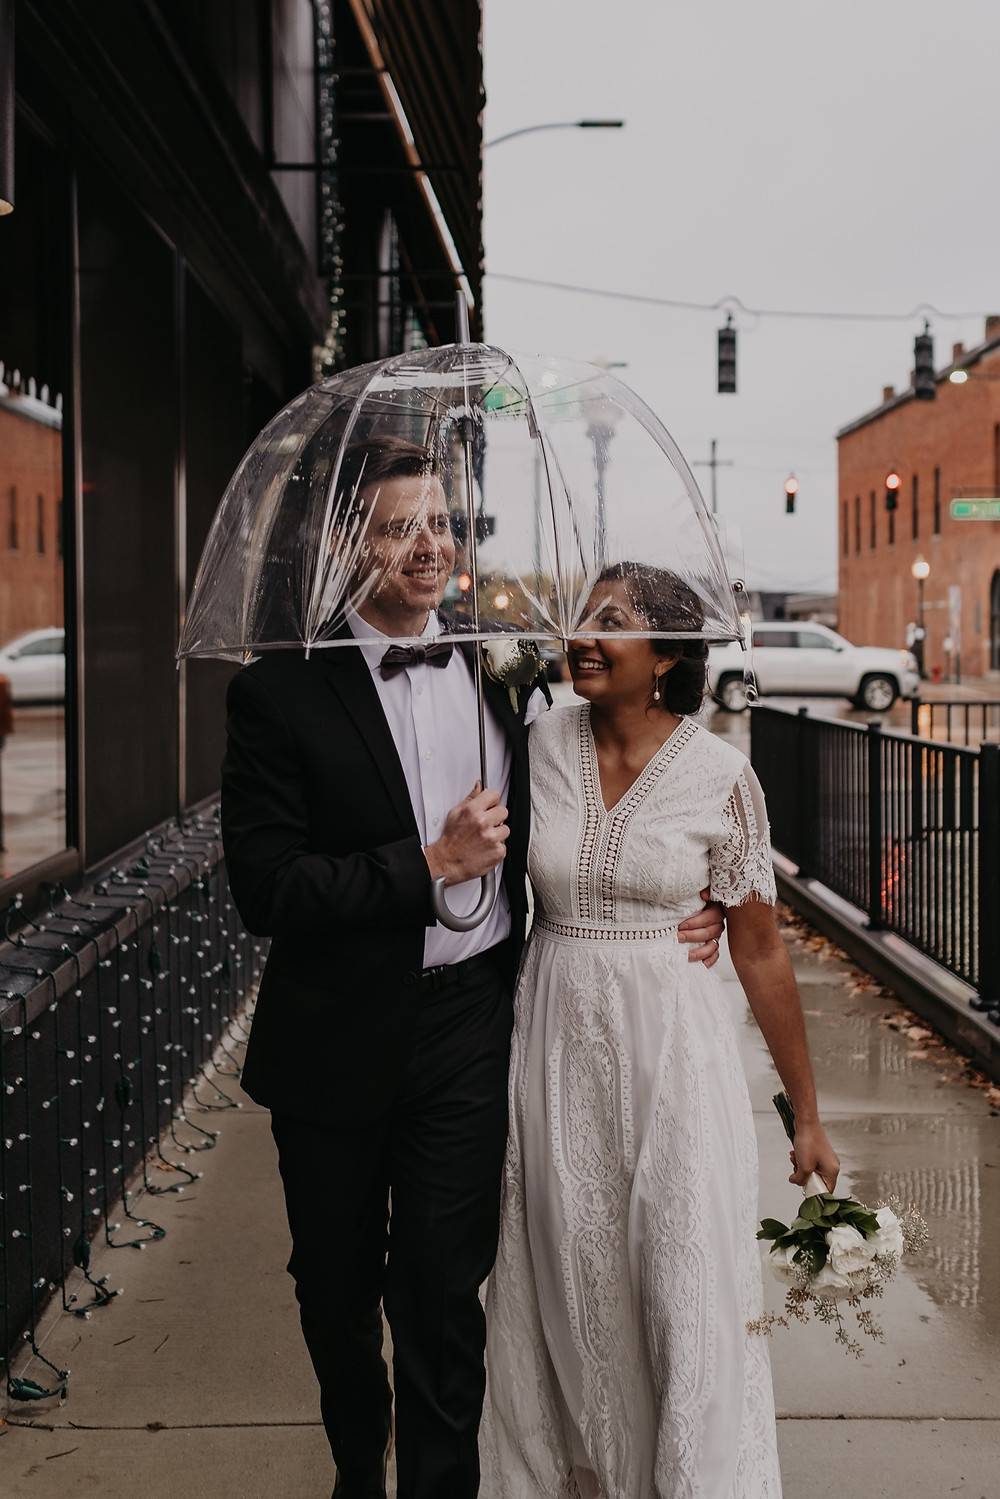 Bride and groom with umbrella on wedding day. Photographed by Nicole Leanne Photography.